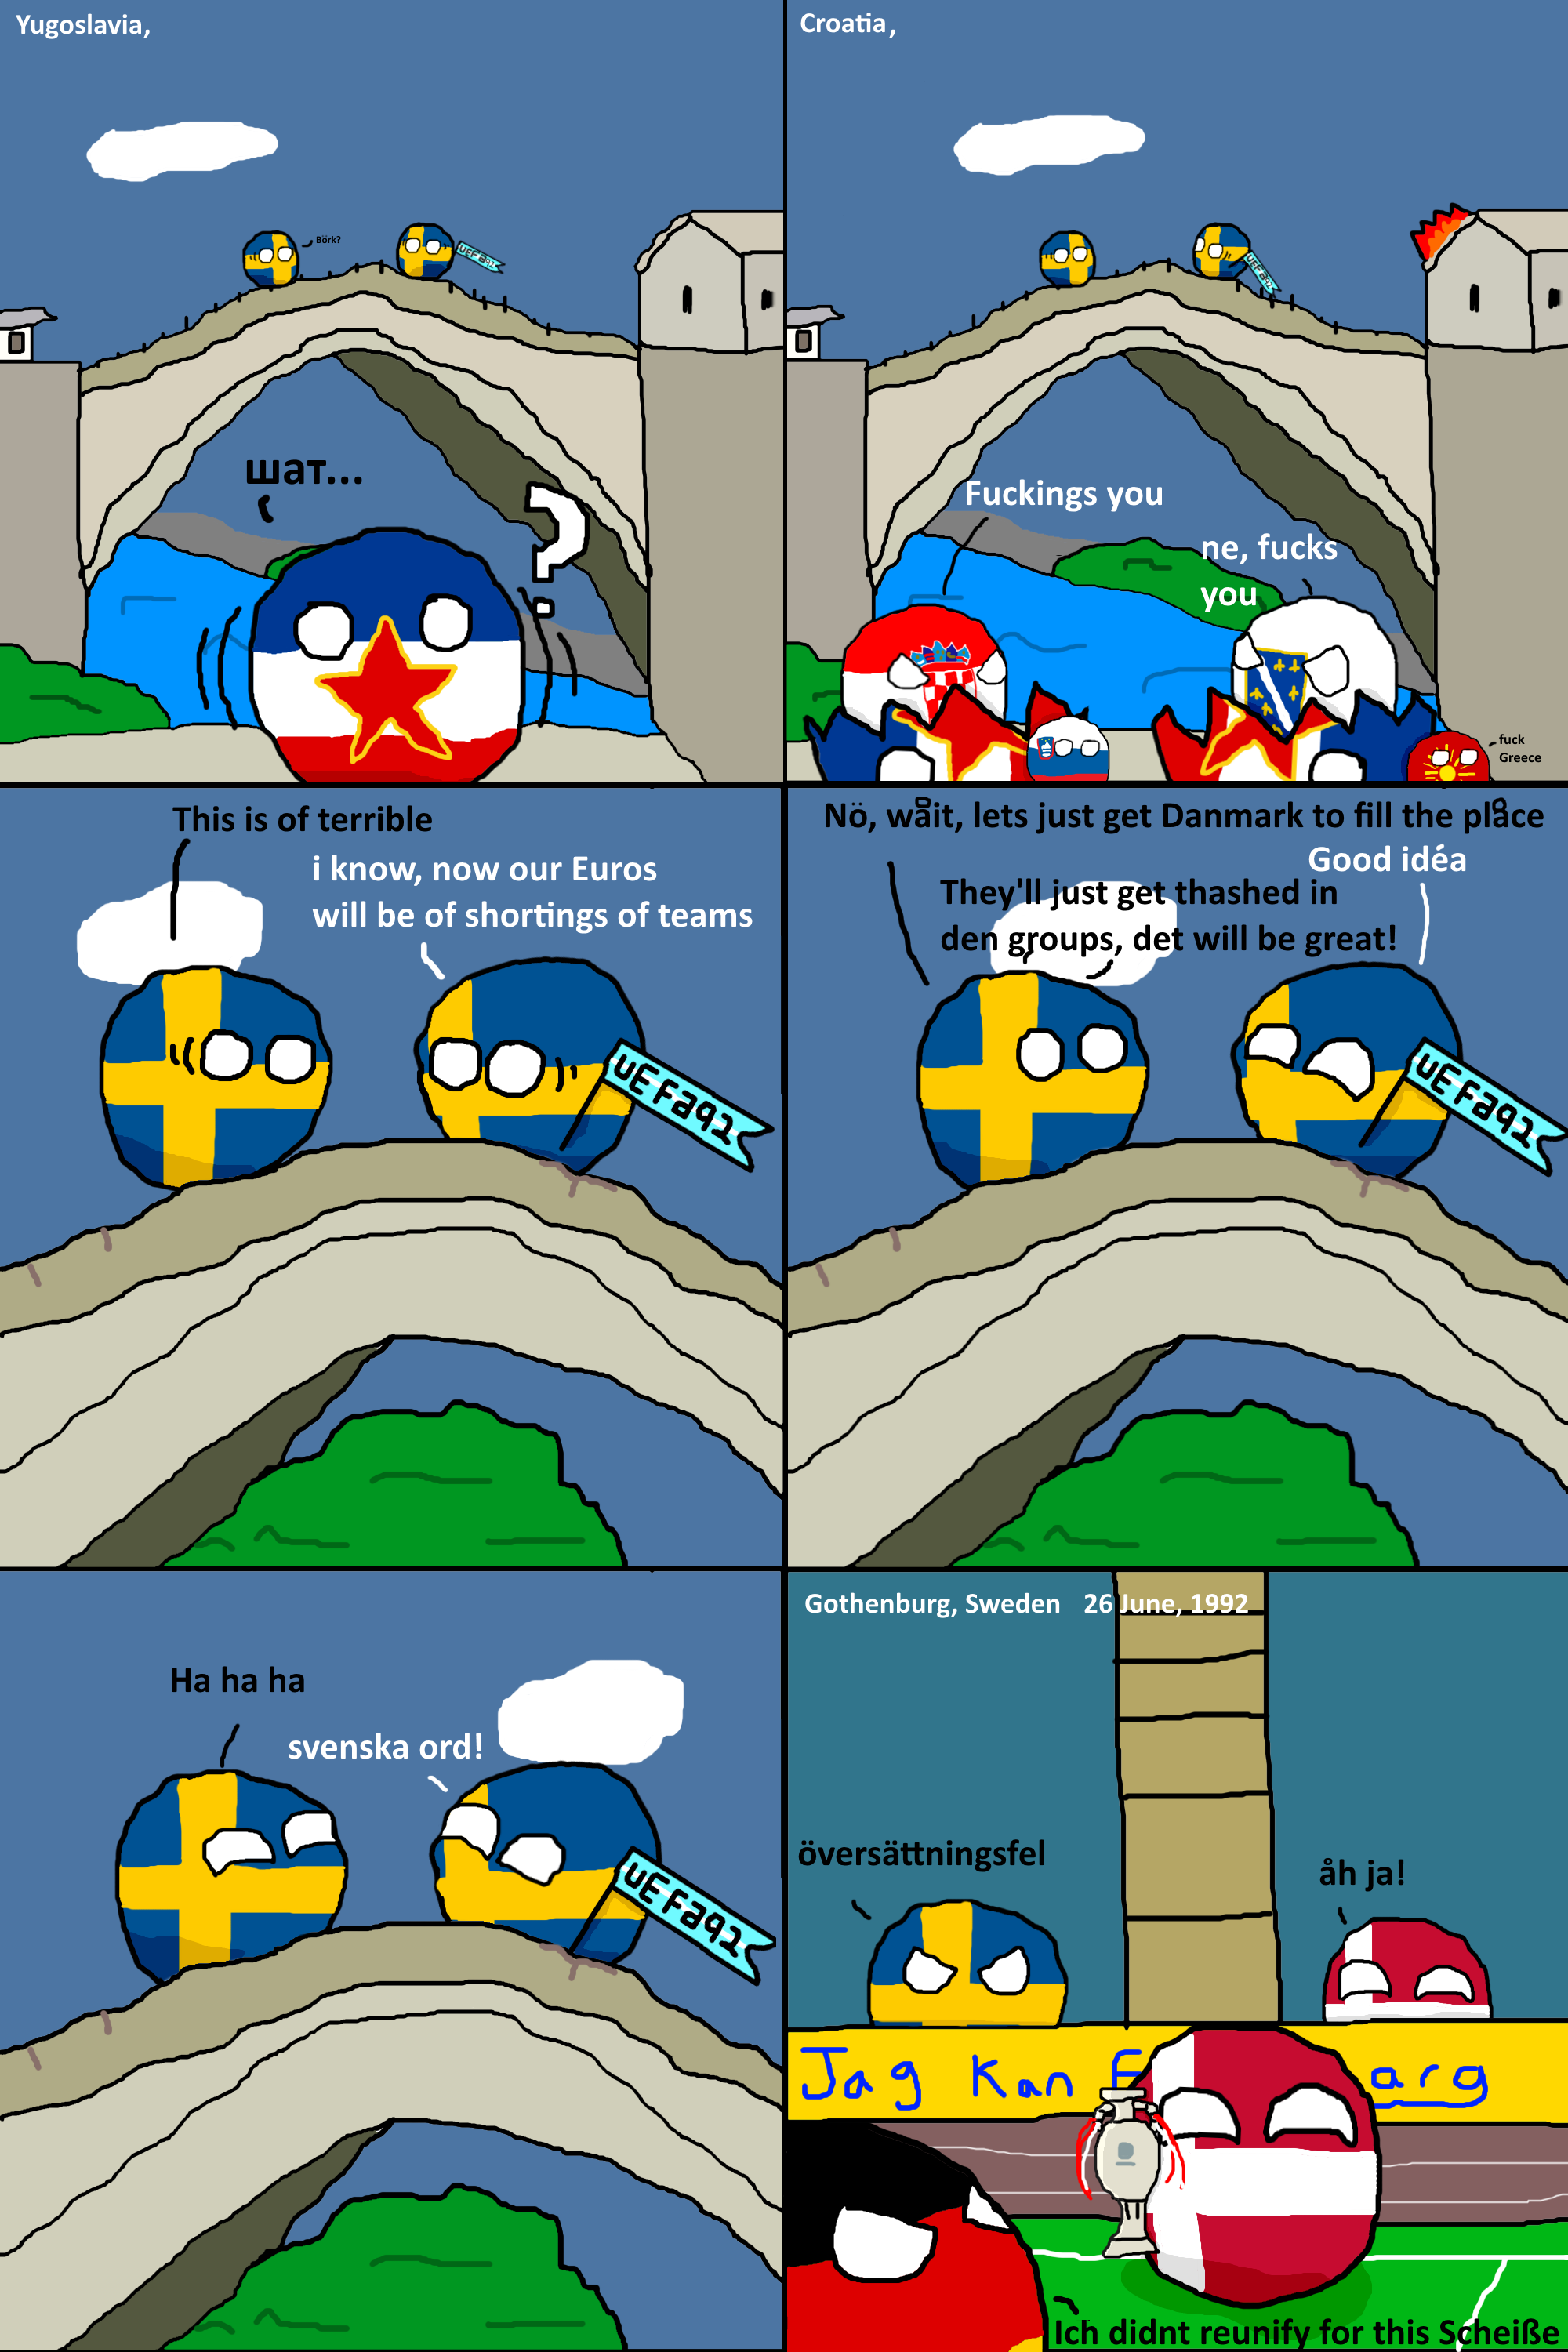 Euro 1992 Antics: Denmark and Sweden. Source: OC.. AMERICA IS CONFUSED. AMERICA WILL YELL LOUDER THAN OTHER COUNTRIES. LOUDEST COUNTRY IS ALWAYS RIGHT. THAT HURT TO TYPE